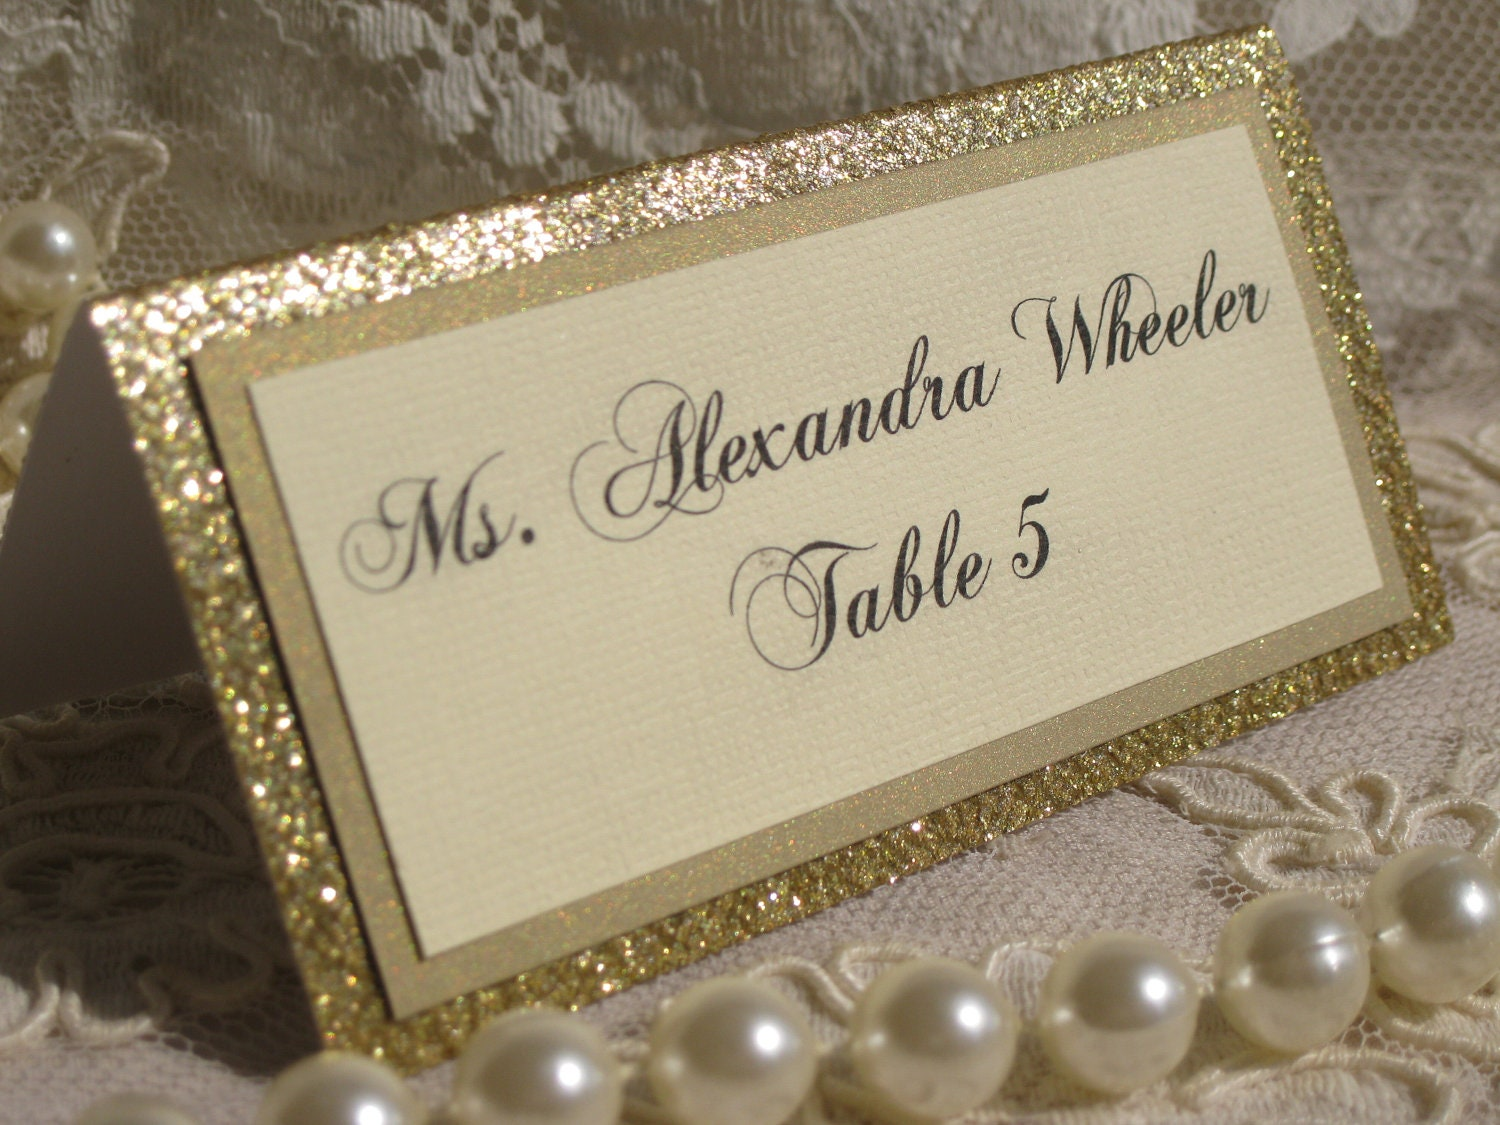 Seating Chart Sign Printed Assignments From Organic Maryland Tent Wedding By Sincereli Photography